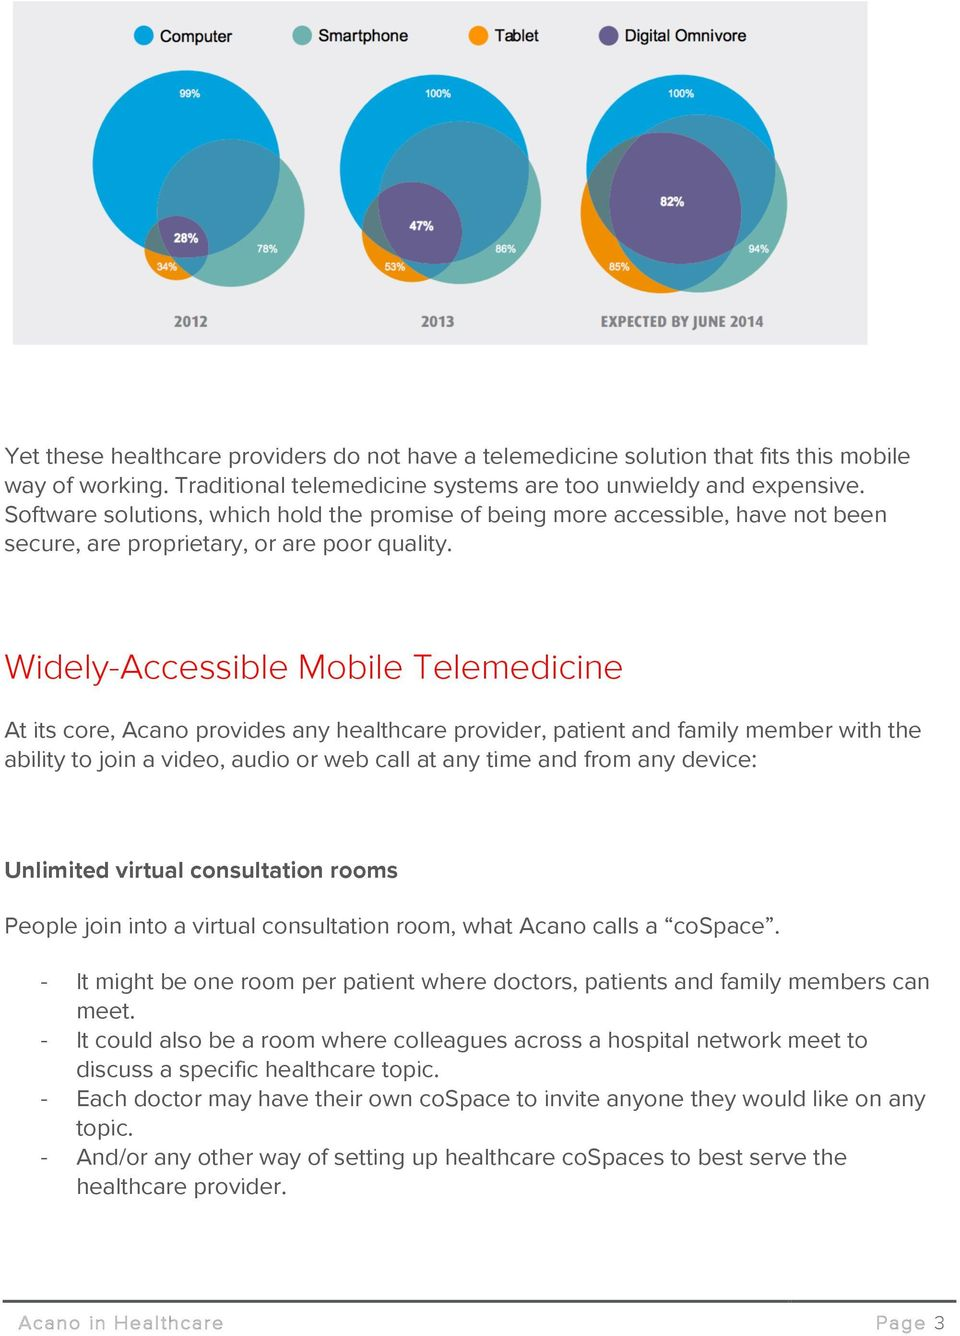 Widely-Accessible Mobile Telemedicine At its core, Acano provides any healthcare provider, patient and family member with the ability to join a video, audio or web call at any time and from any